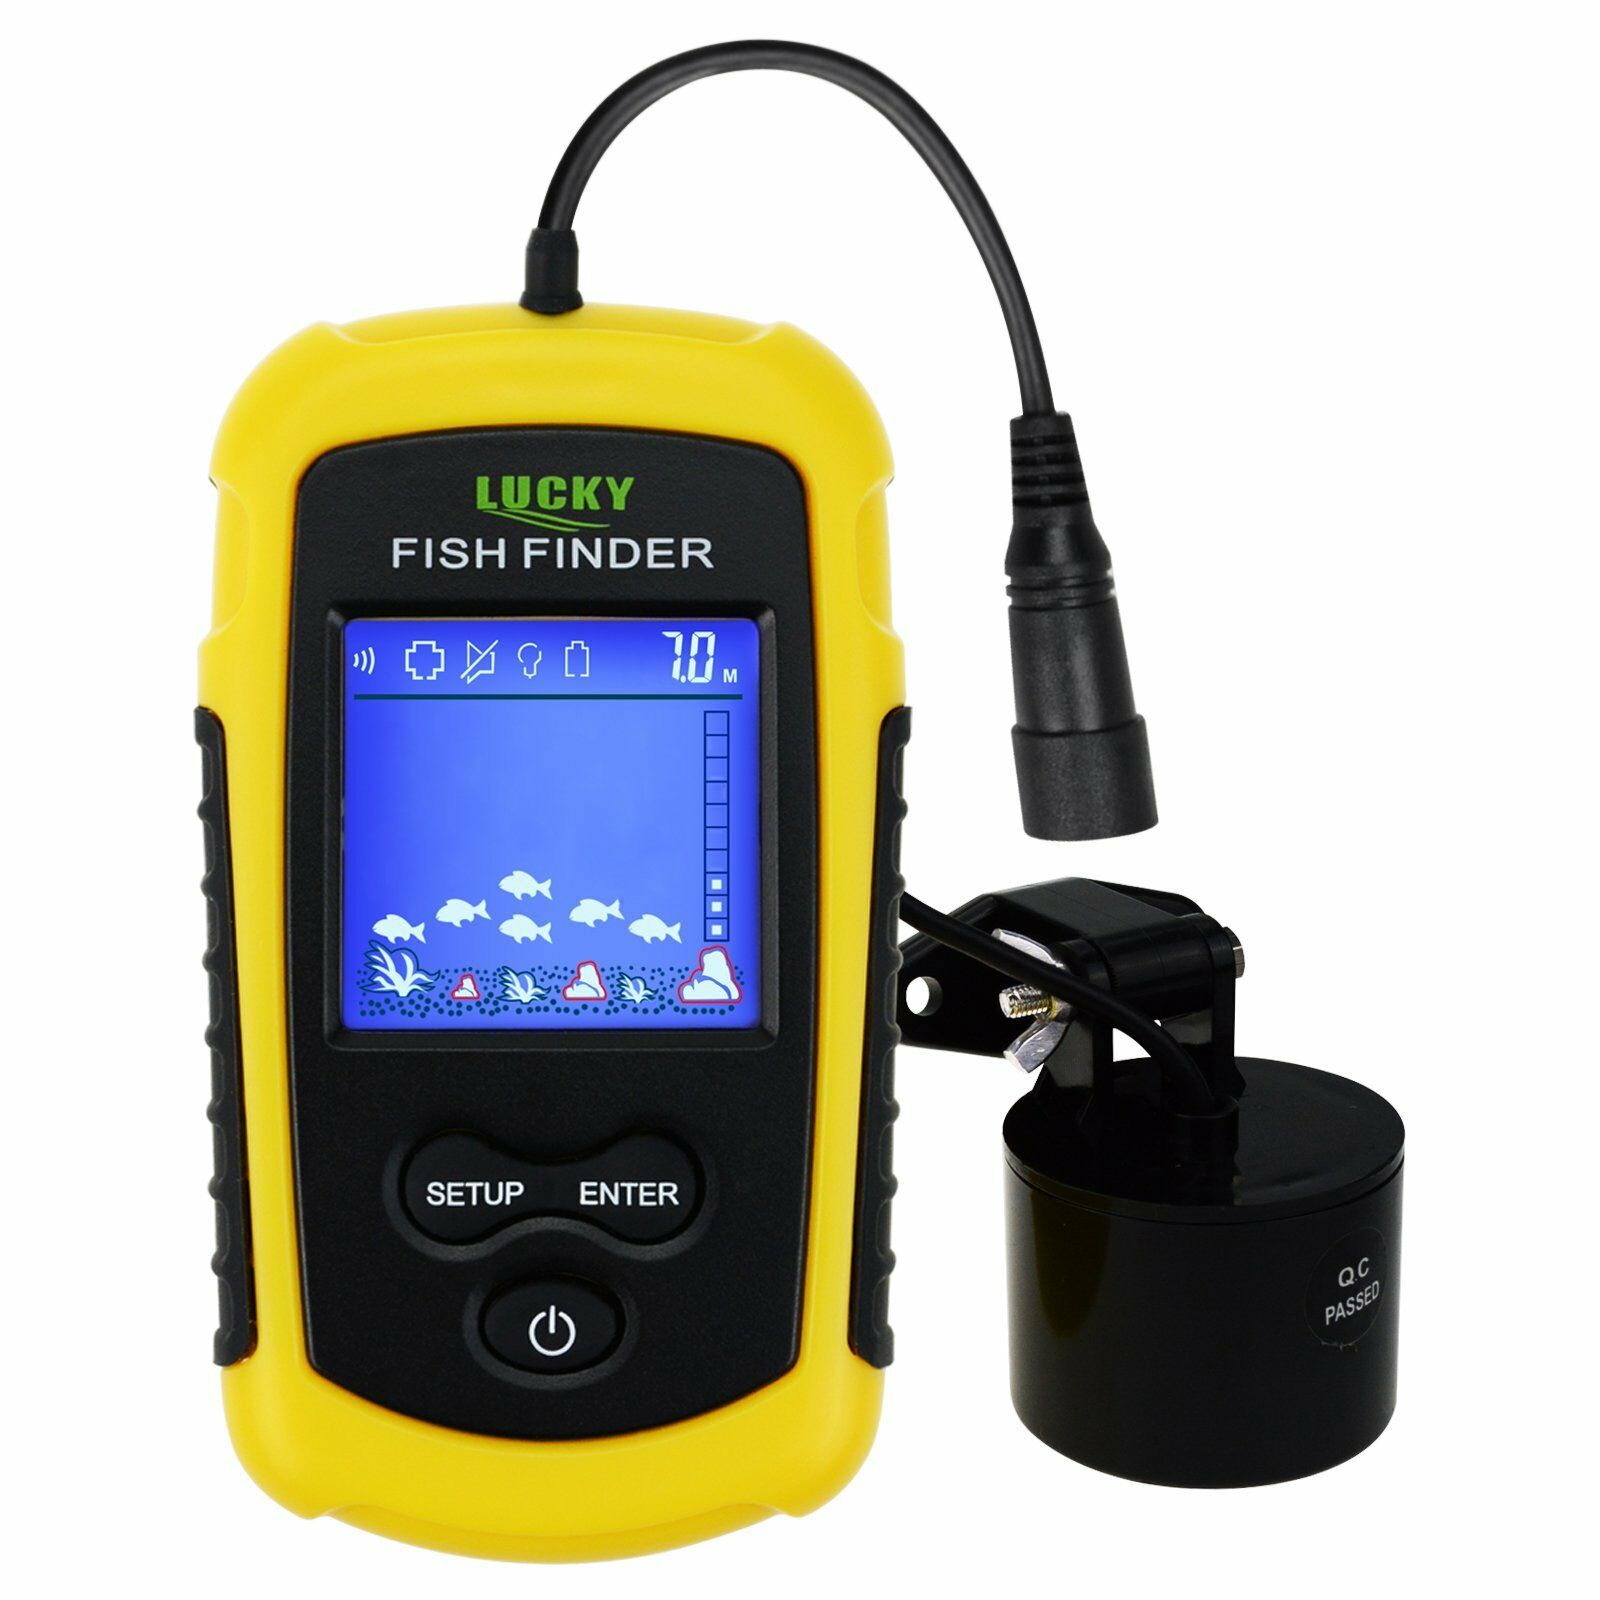 Portable Poisson Finder Sonar, TN  Anti-UV LCD Afficher w  LED Rétro-éclairage